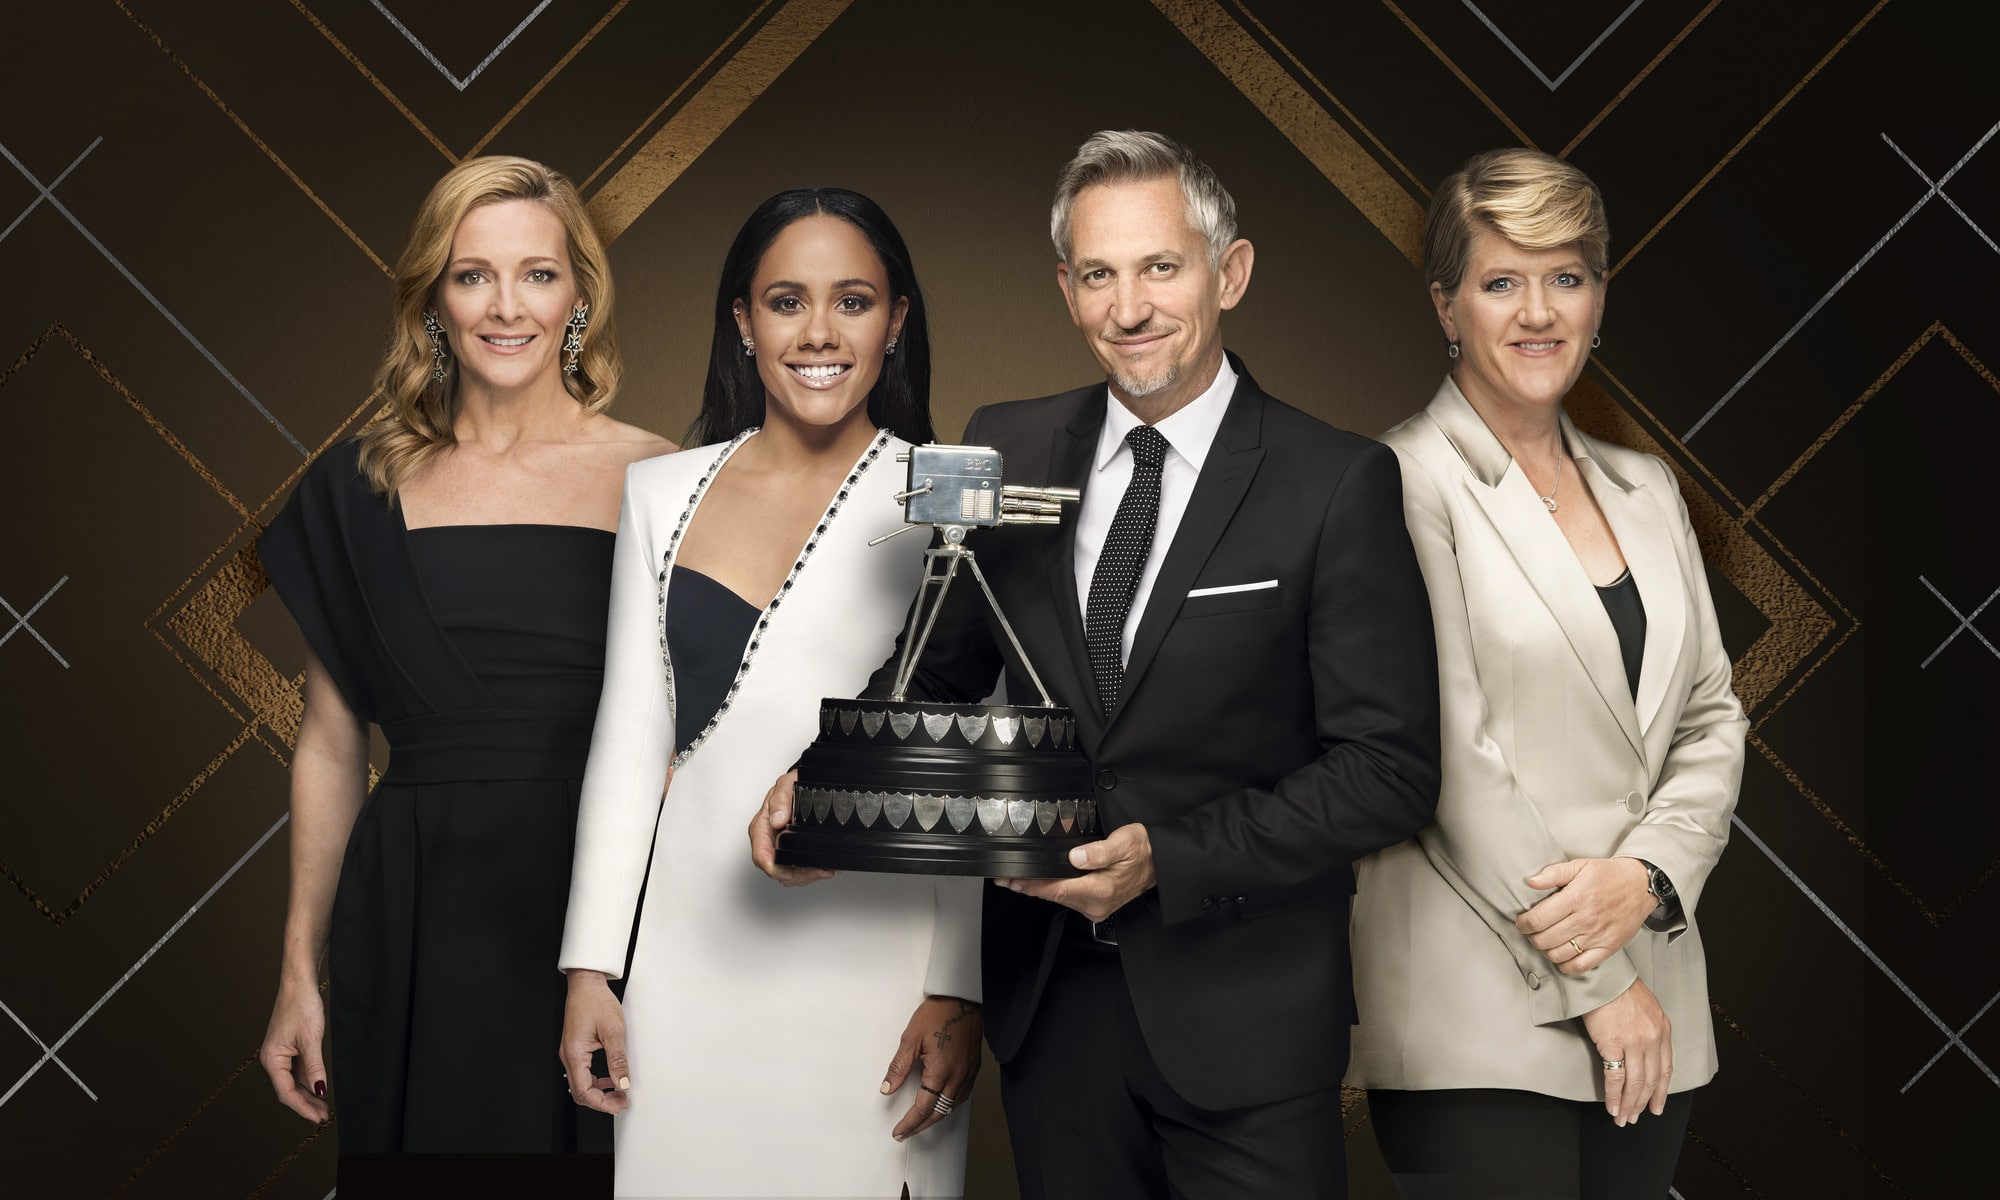 who is Announcing BBC Sports Personality Of The Year